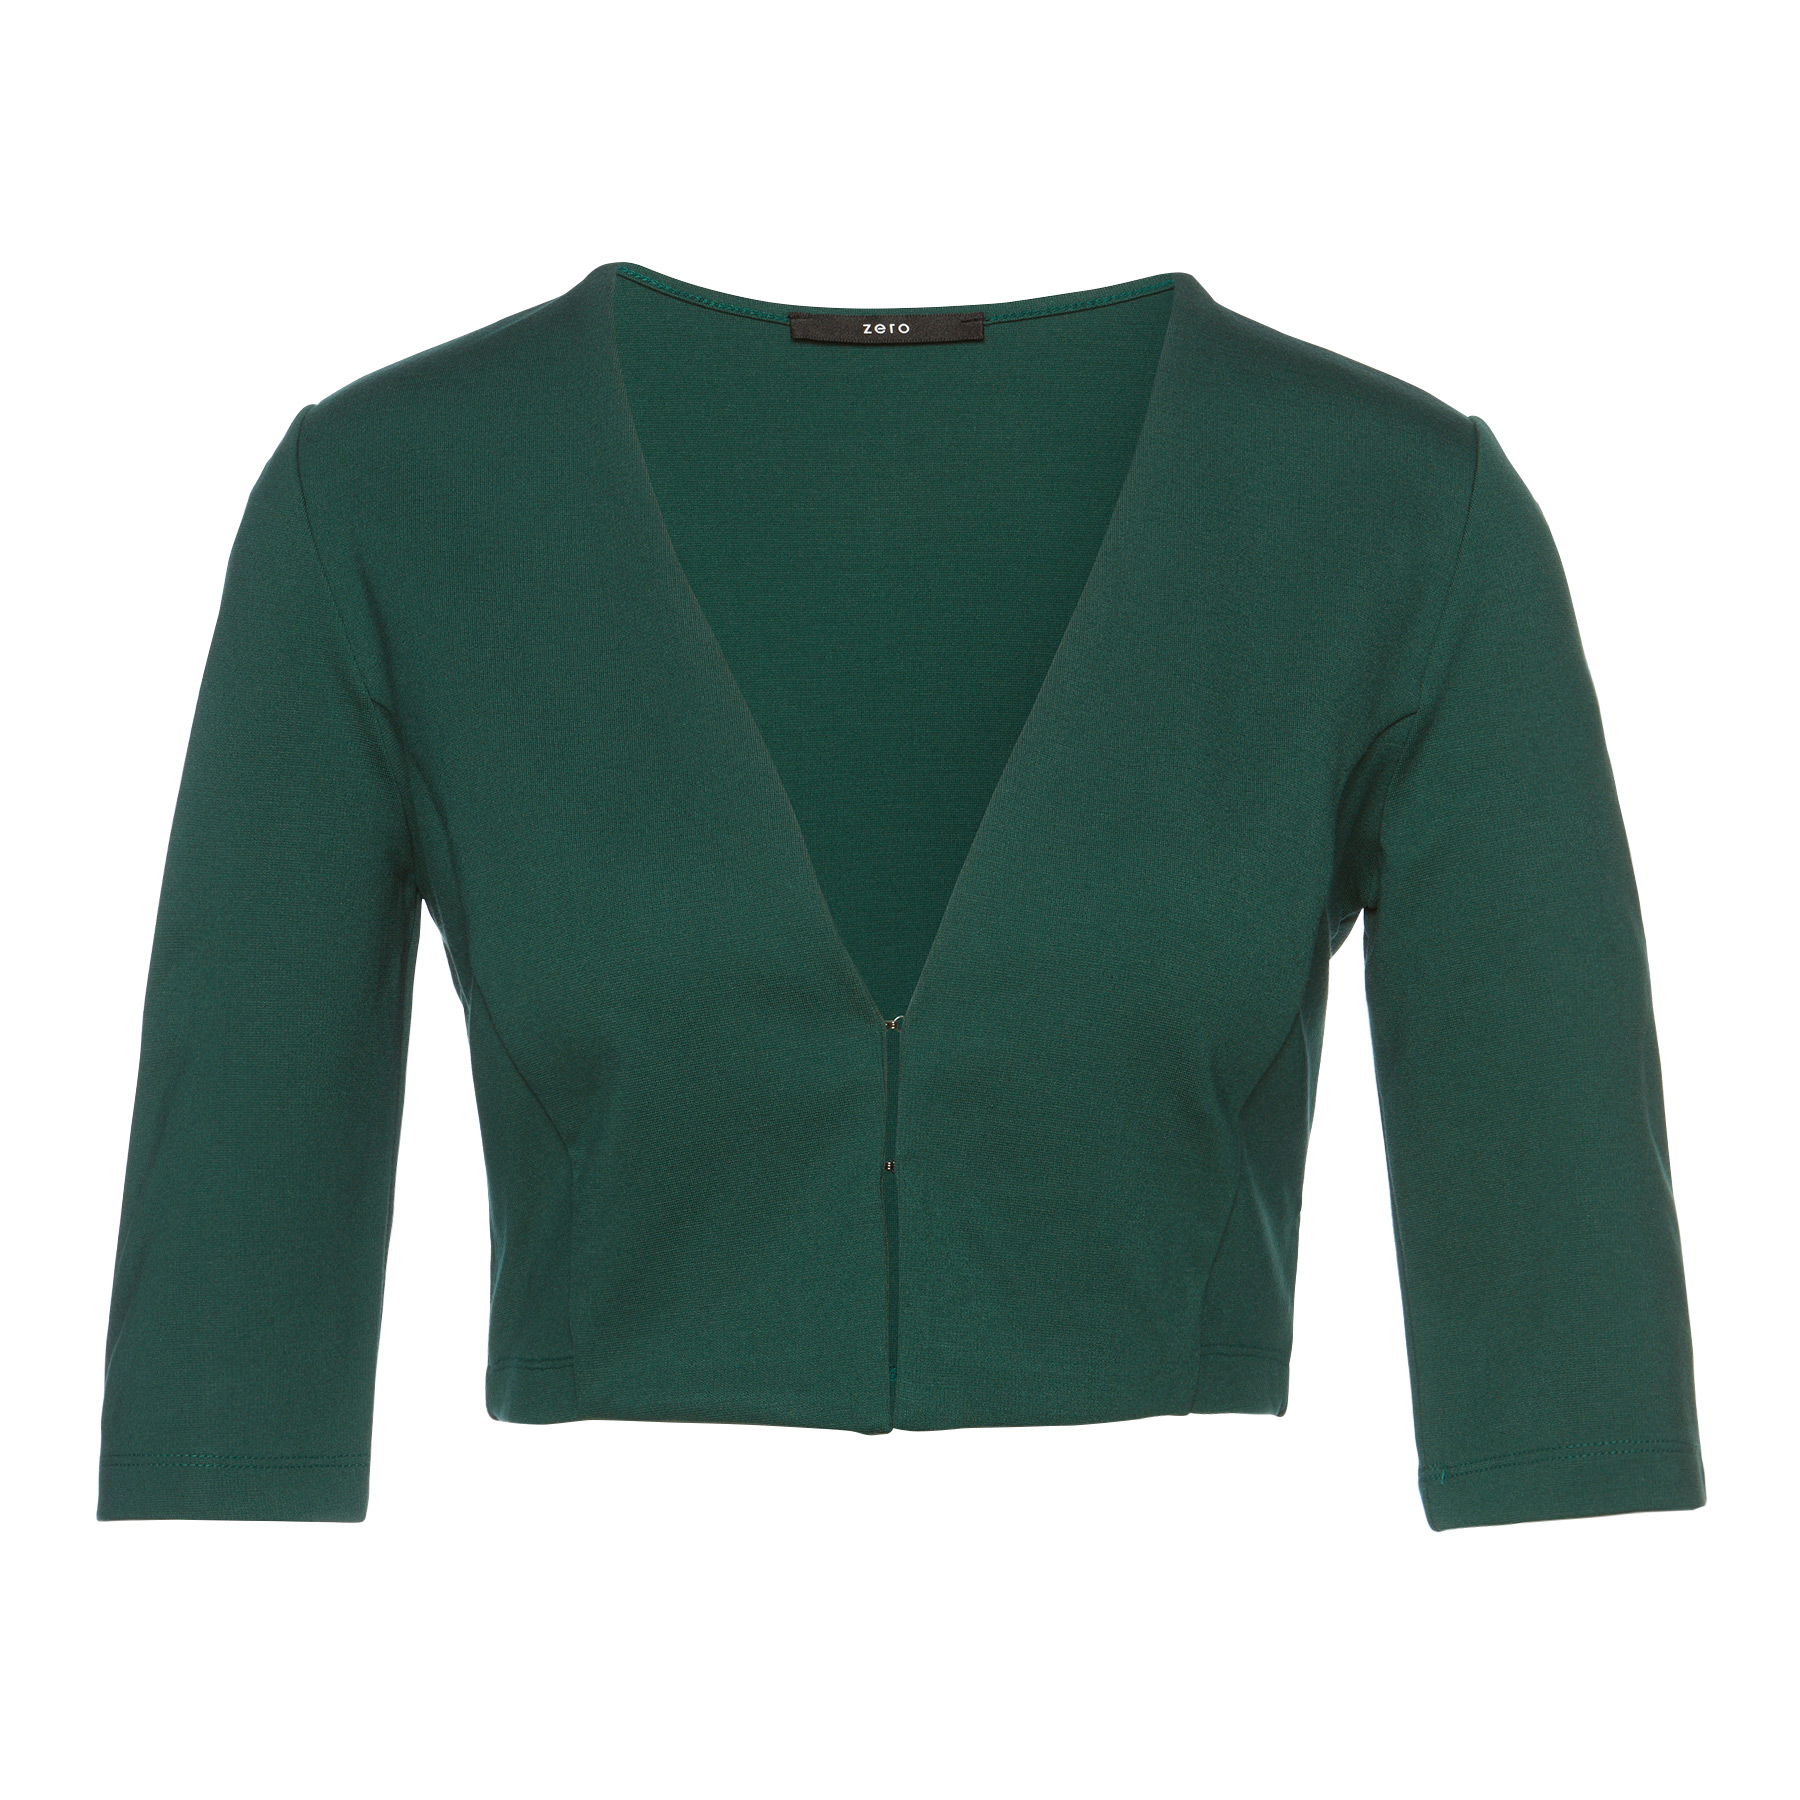 Bolero in Jersey-Qualität jungle green